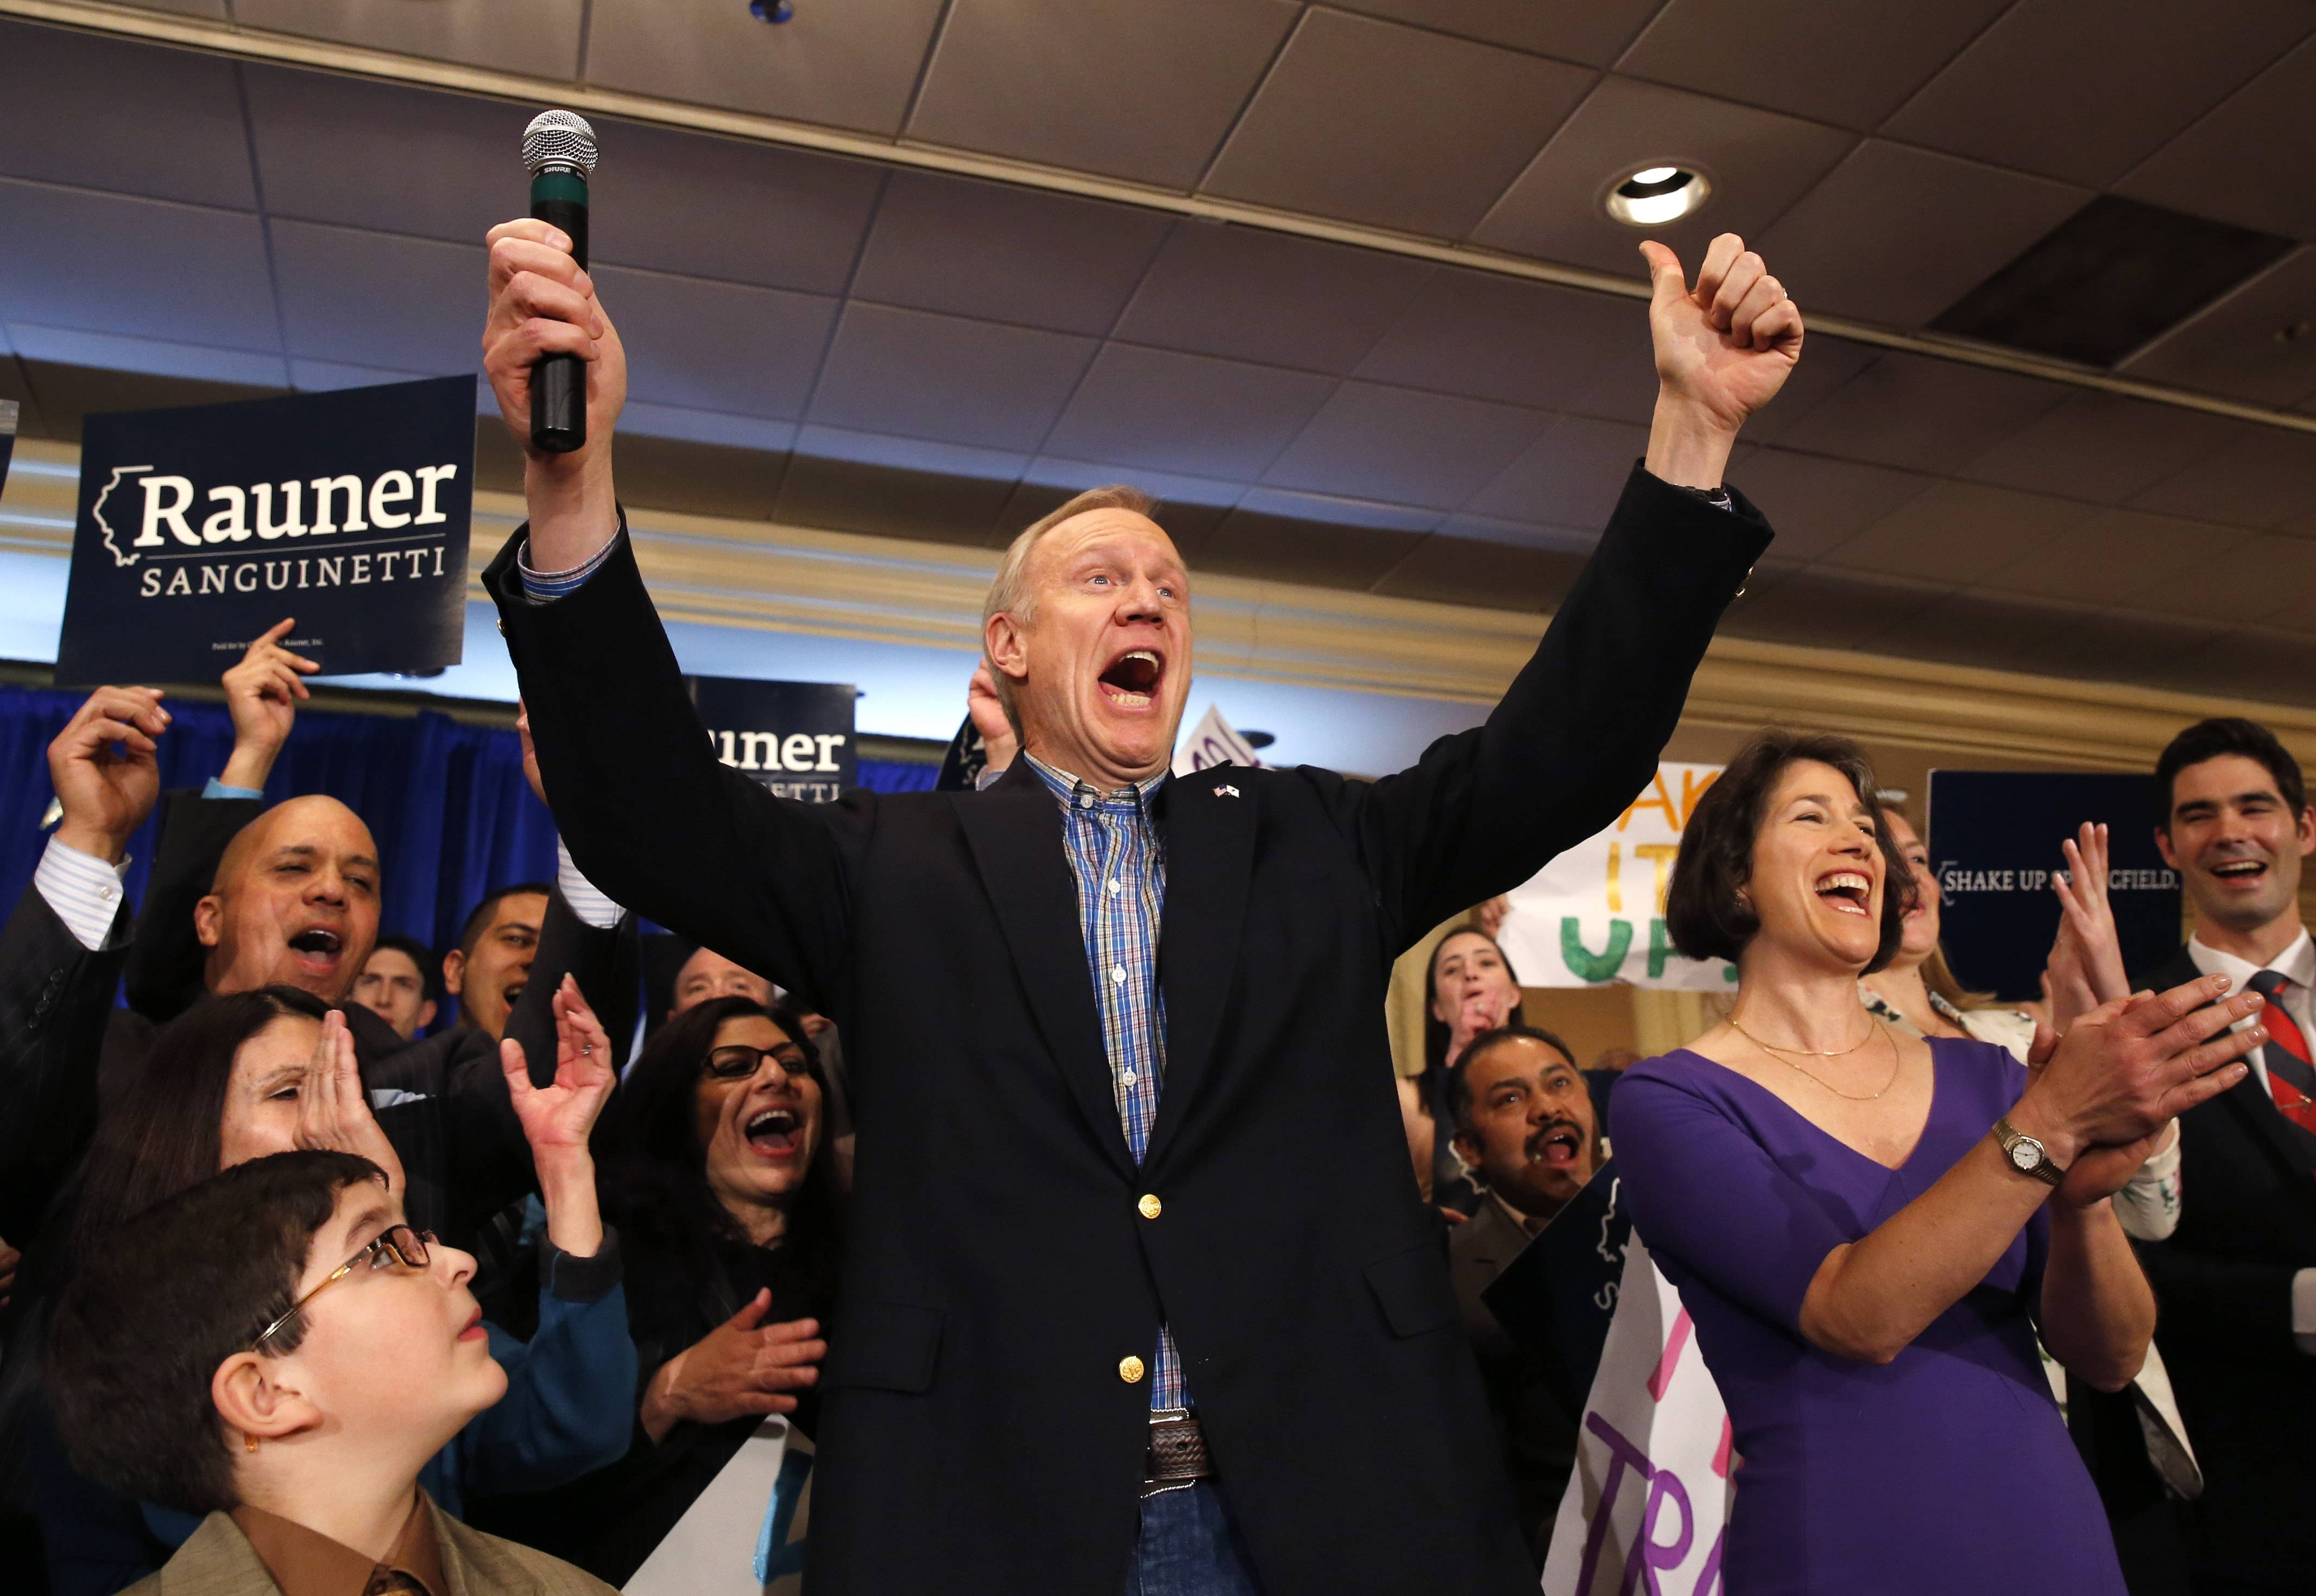 Businessman Bruce Rauner, left, and his wife Diana, right, celebrate with supporters as Rauner claimed victory in becoming the Republican gubernatorial candidate.